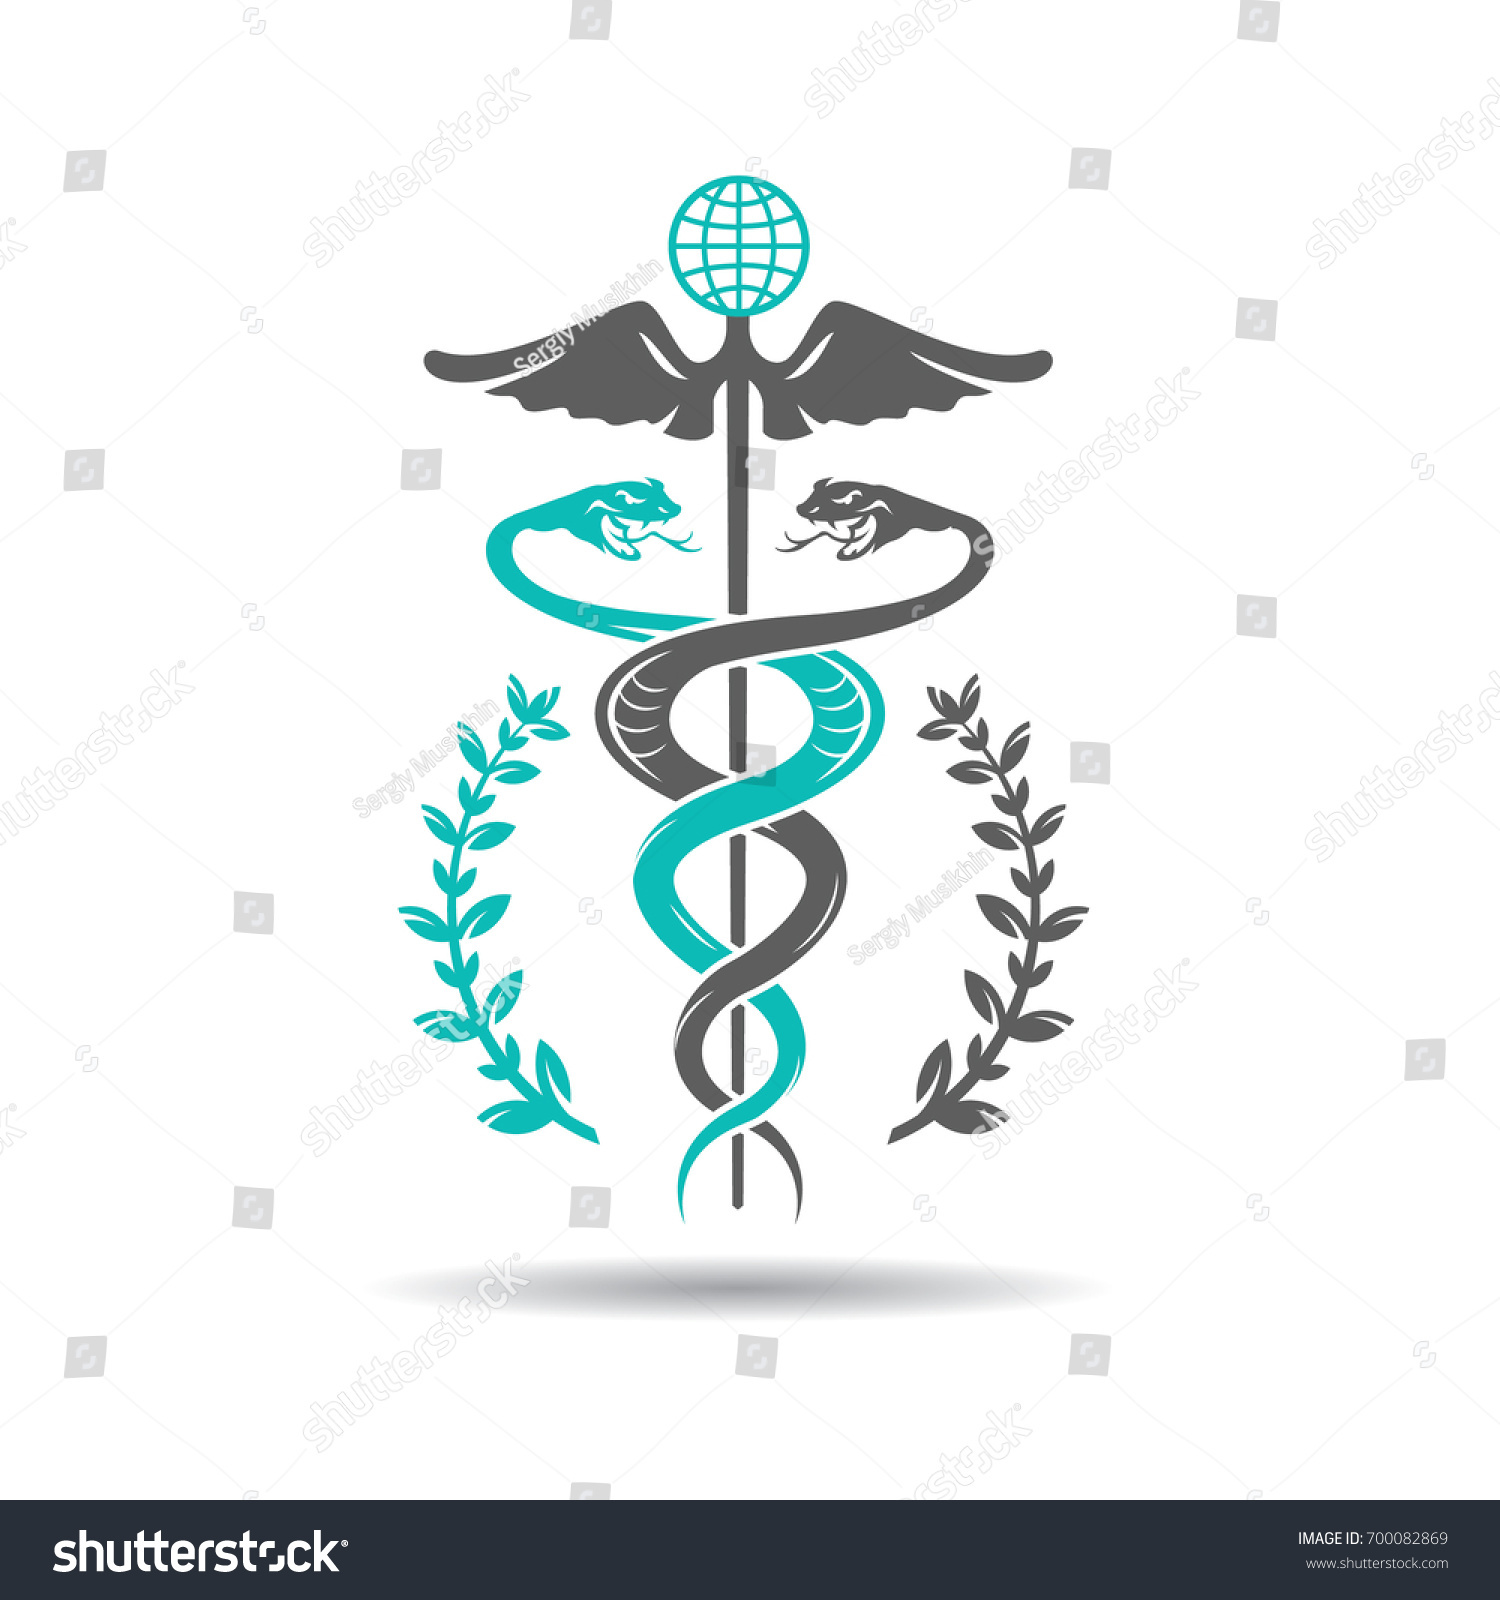 Caduceus symbol two snakes intertwined around stock vector caduceus symbol of two snakes intertwined around a winged rod healing and medicine symbol biocorpaavc